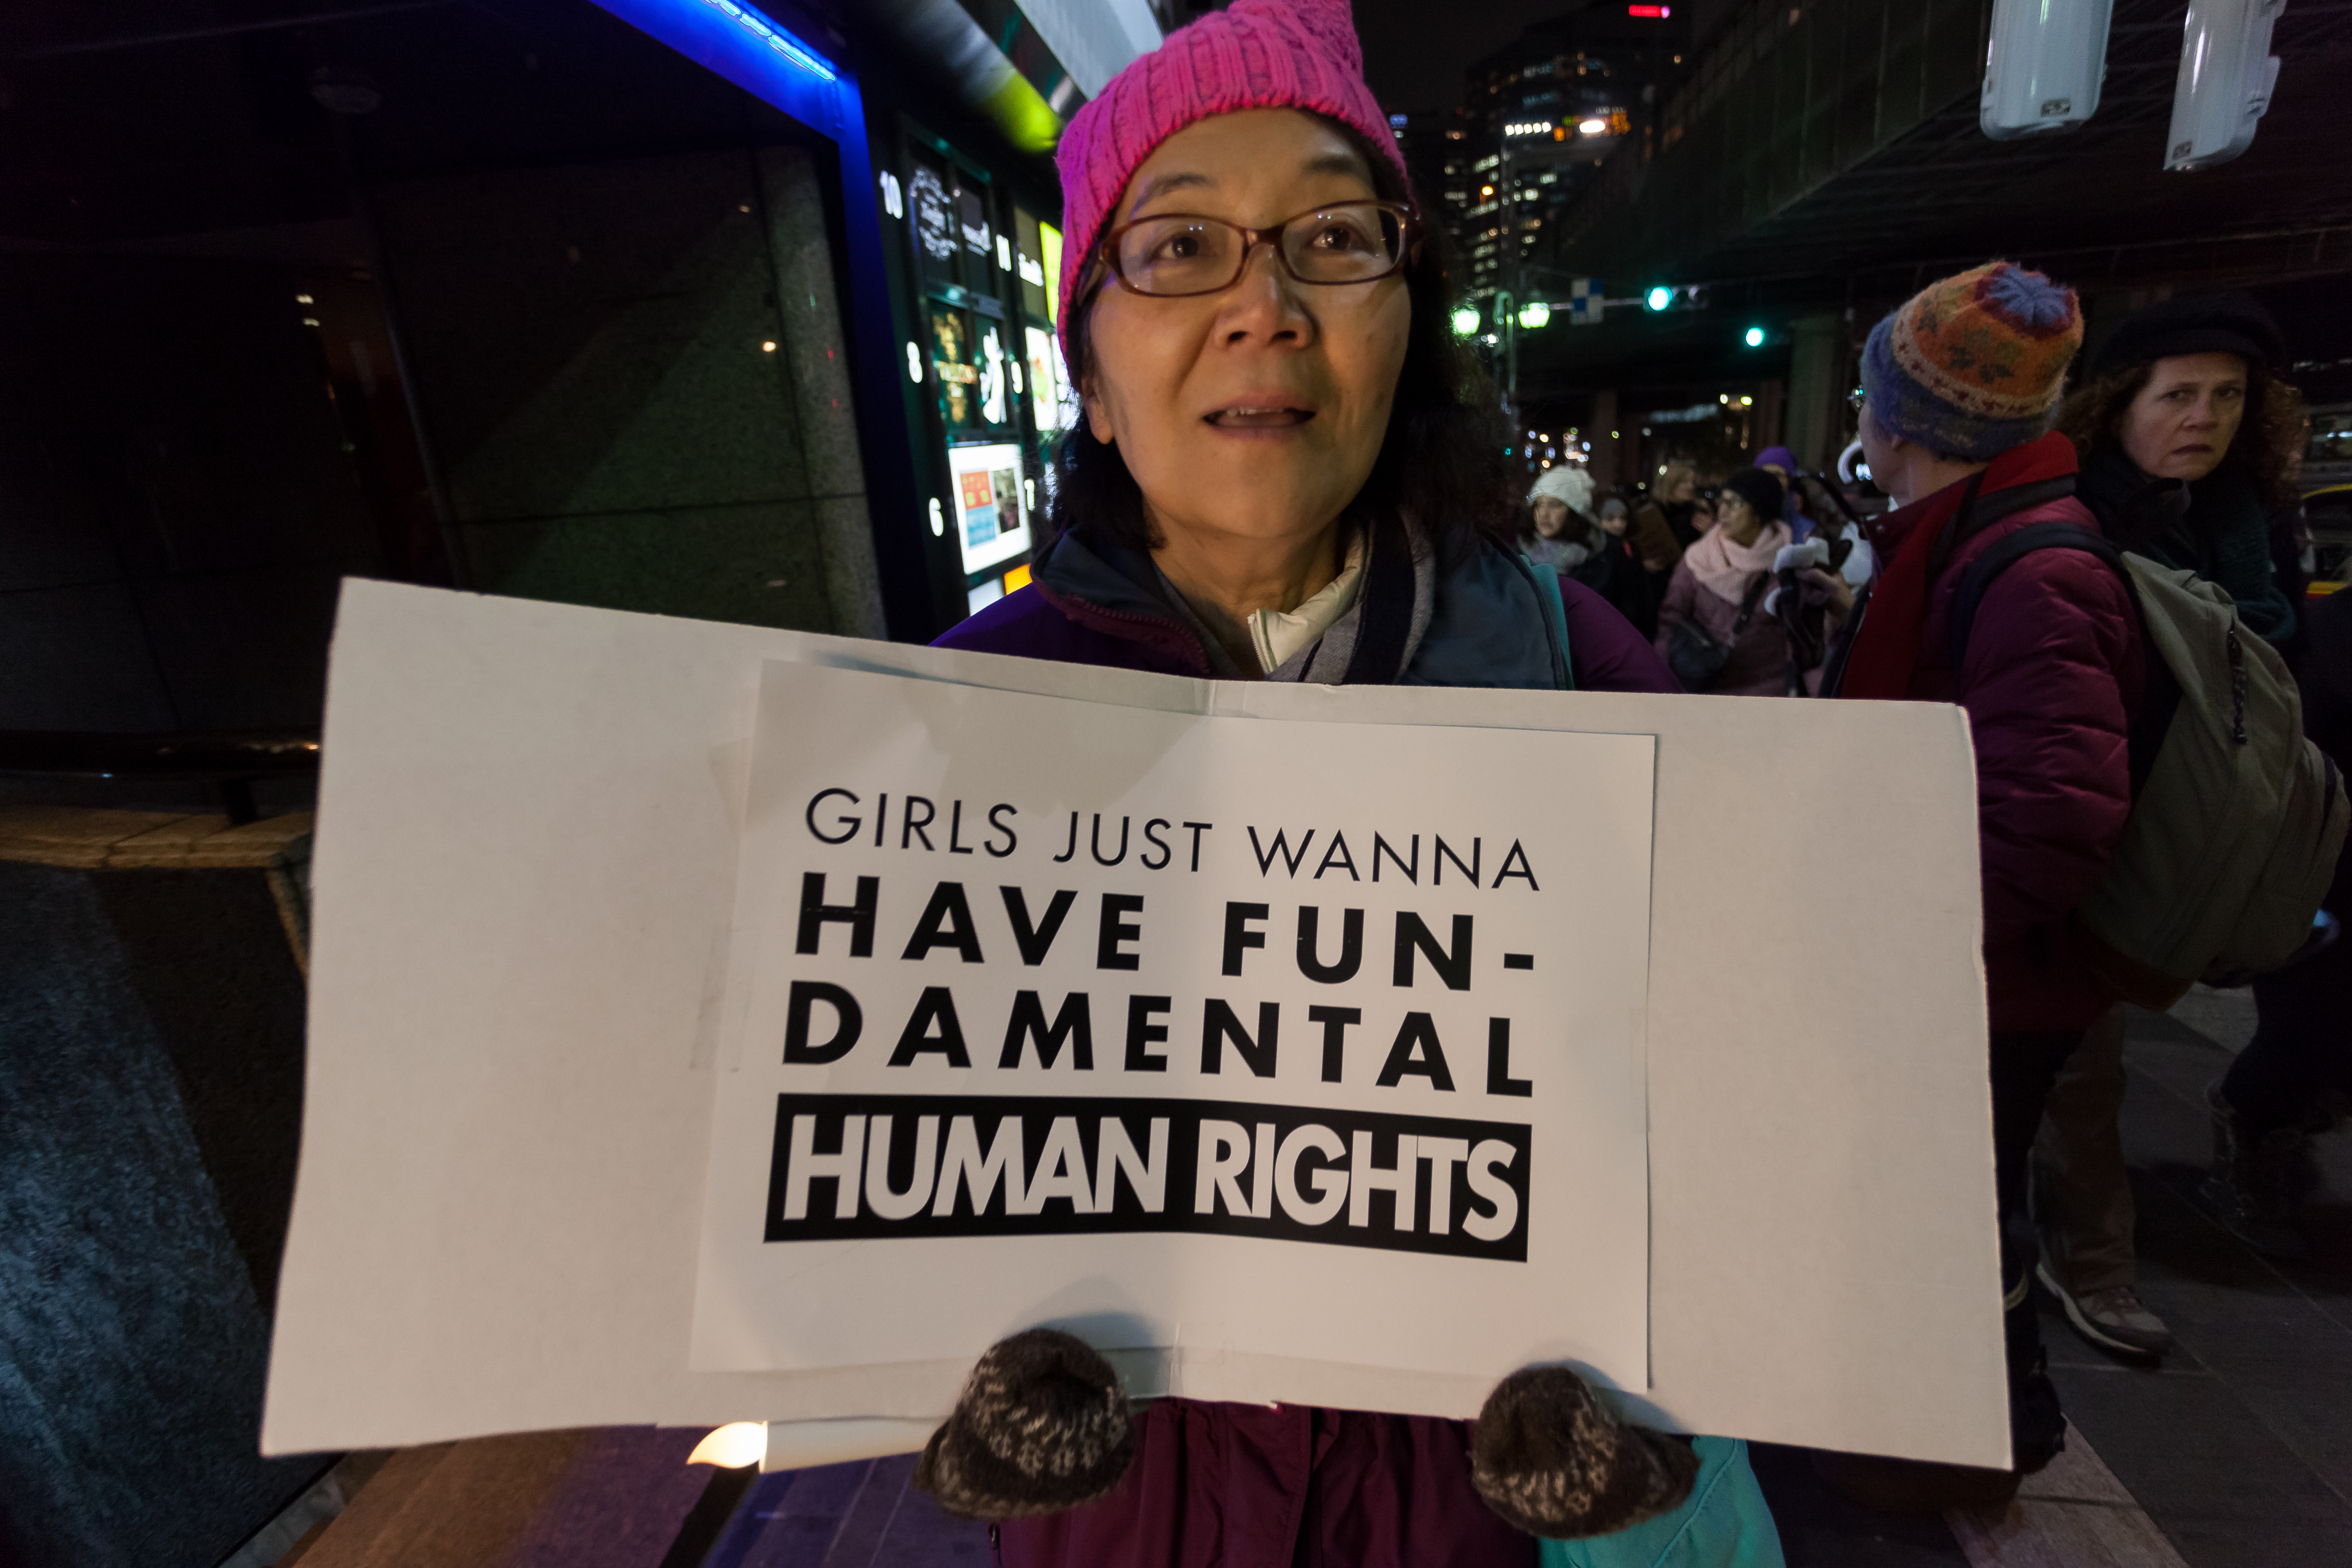 A woman attends a protest march on Jan. 20, 2017 in Tokyo, Japan.